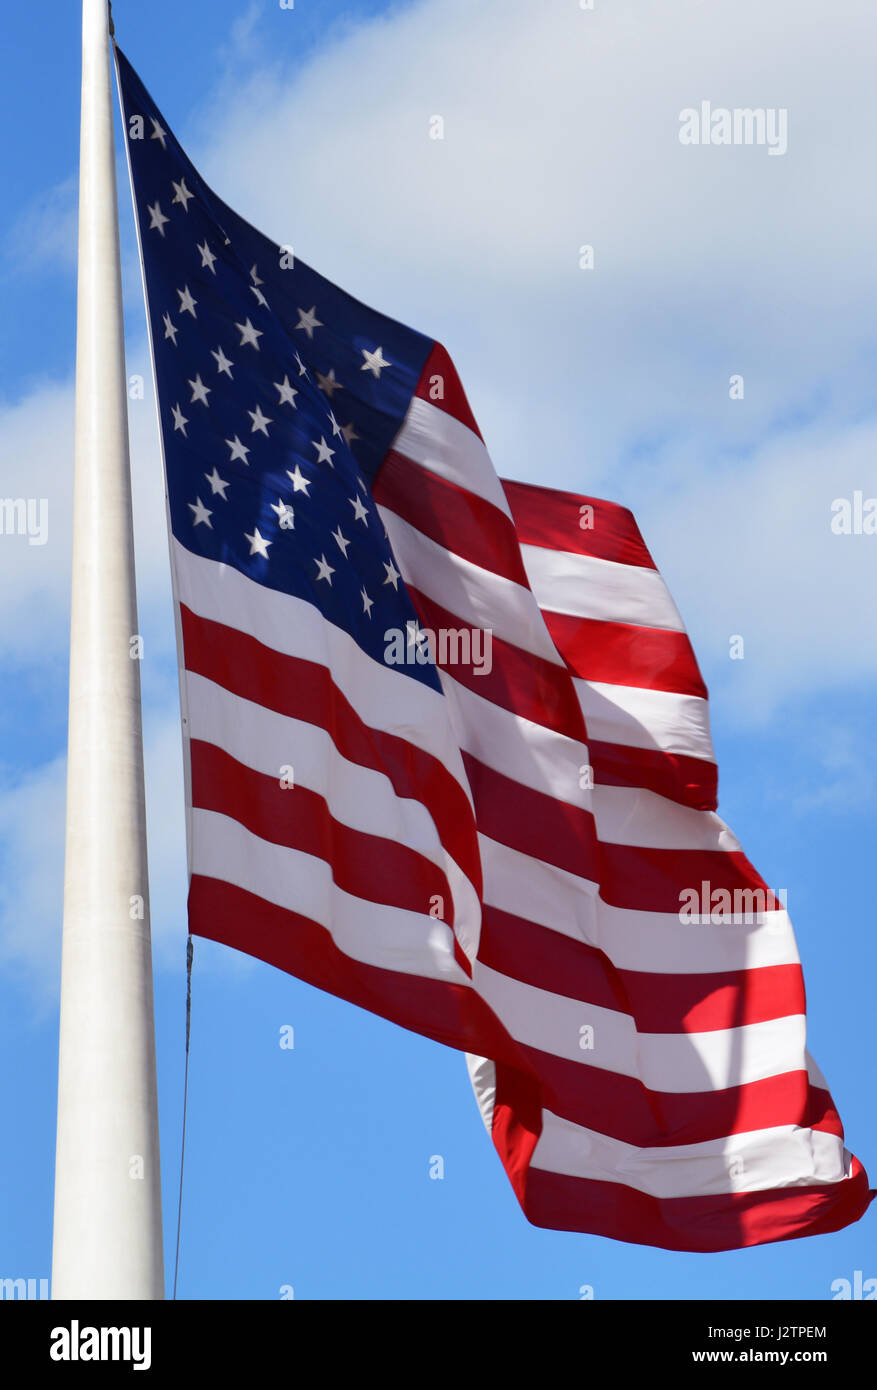 Photo of american flag flying